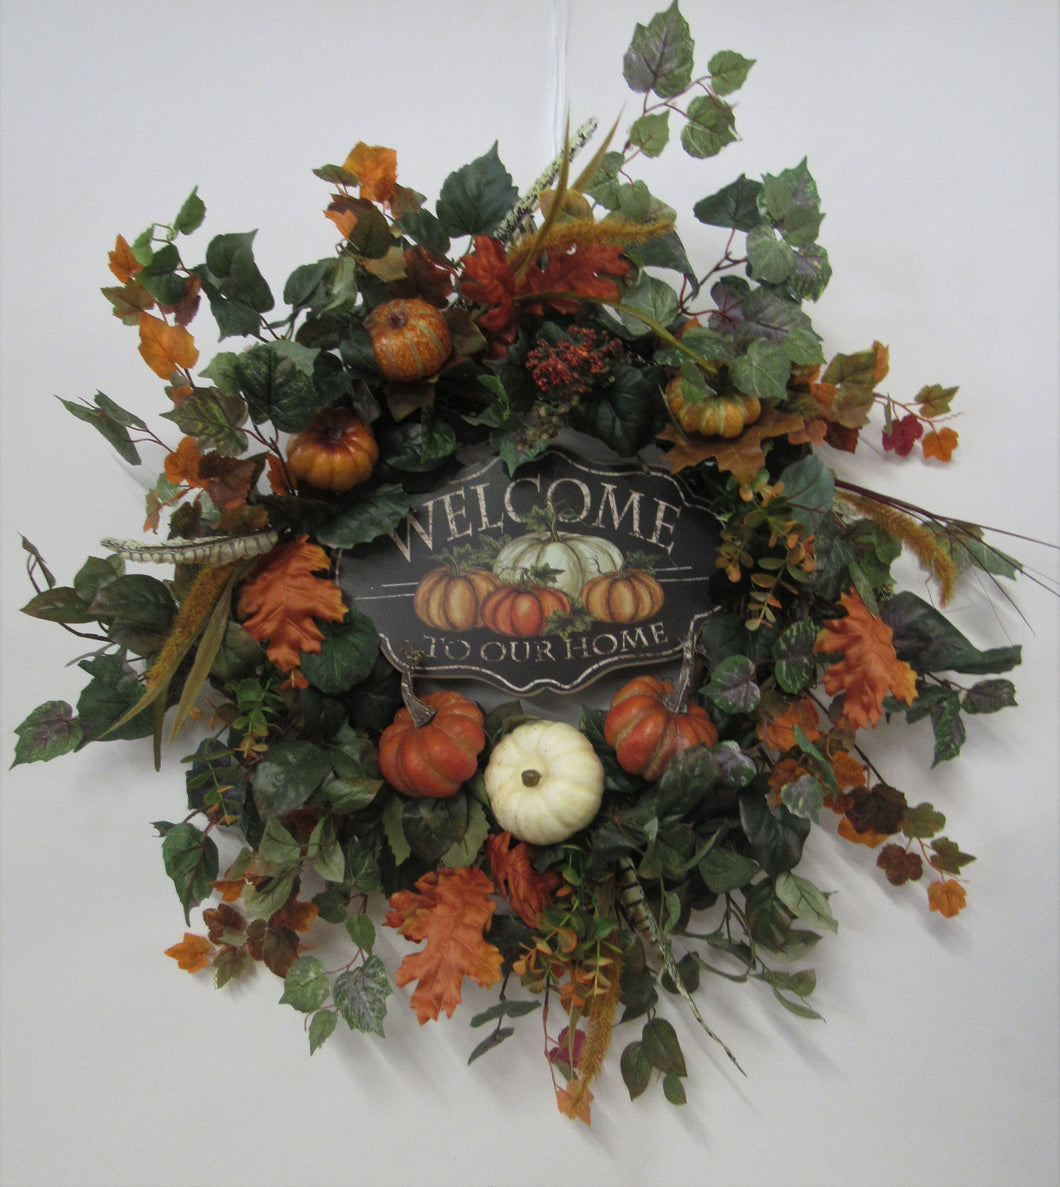 Gallery/Harv182 - April's Garden Wreath